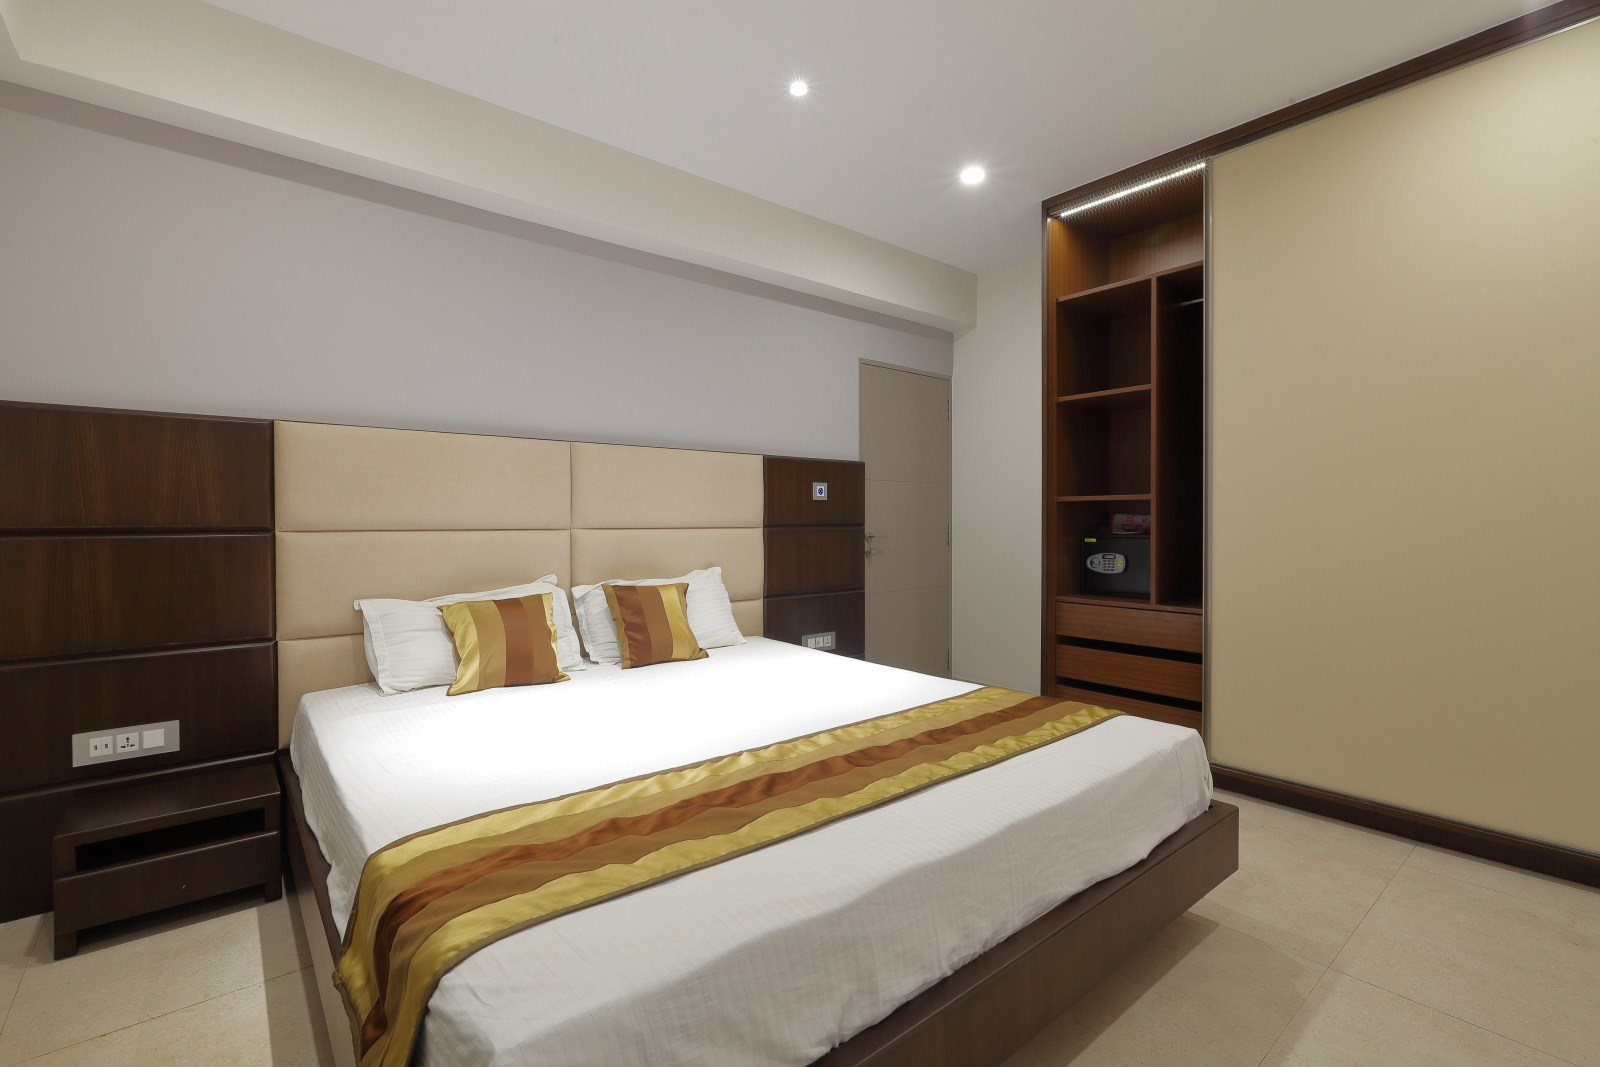 Interior Design Cost For Bedroom Best Architects Interior Designer In Ahmedabad Neotecture,Dress Lehenga Blouse Designs 2019